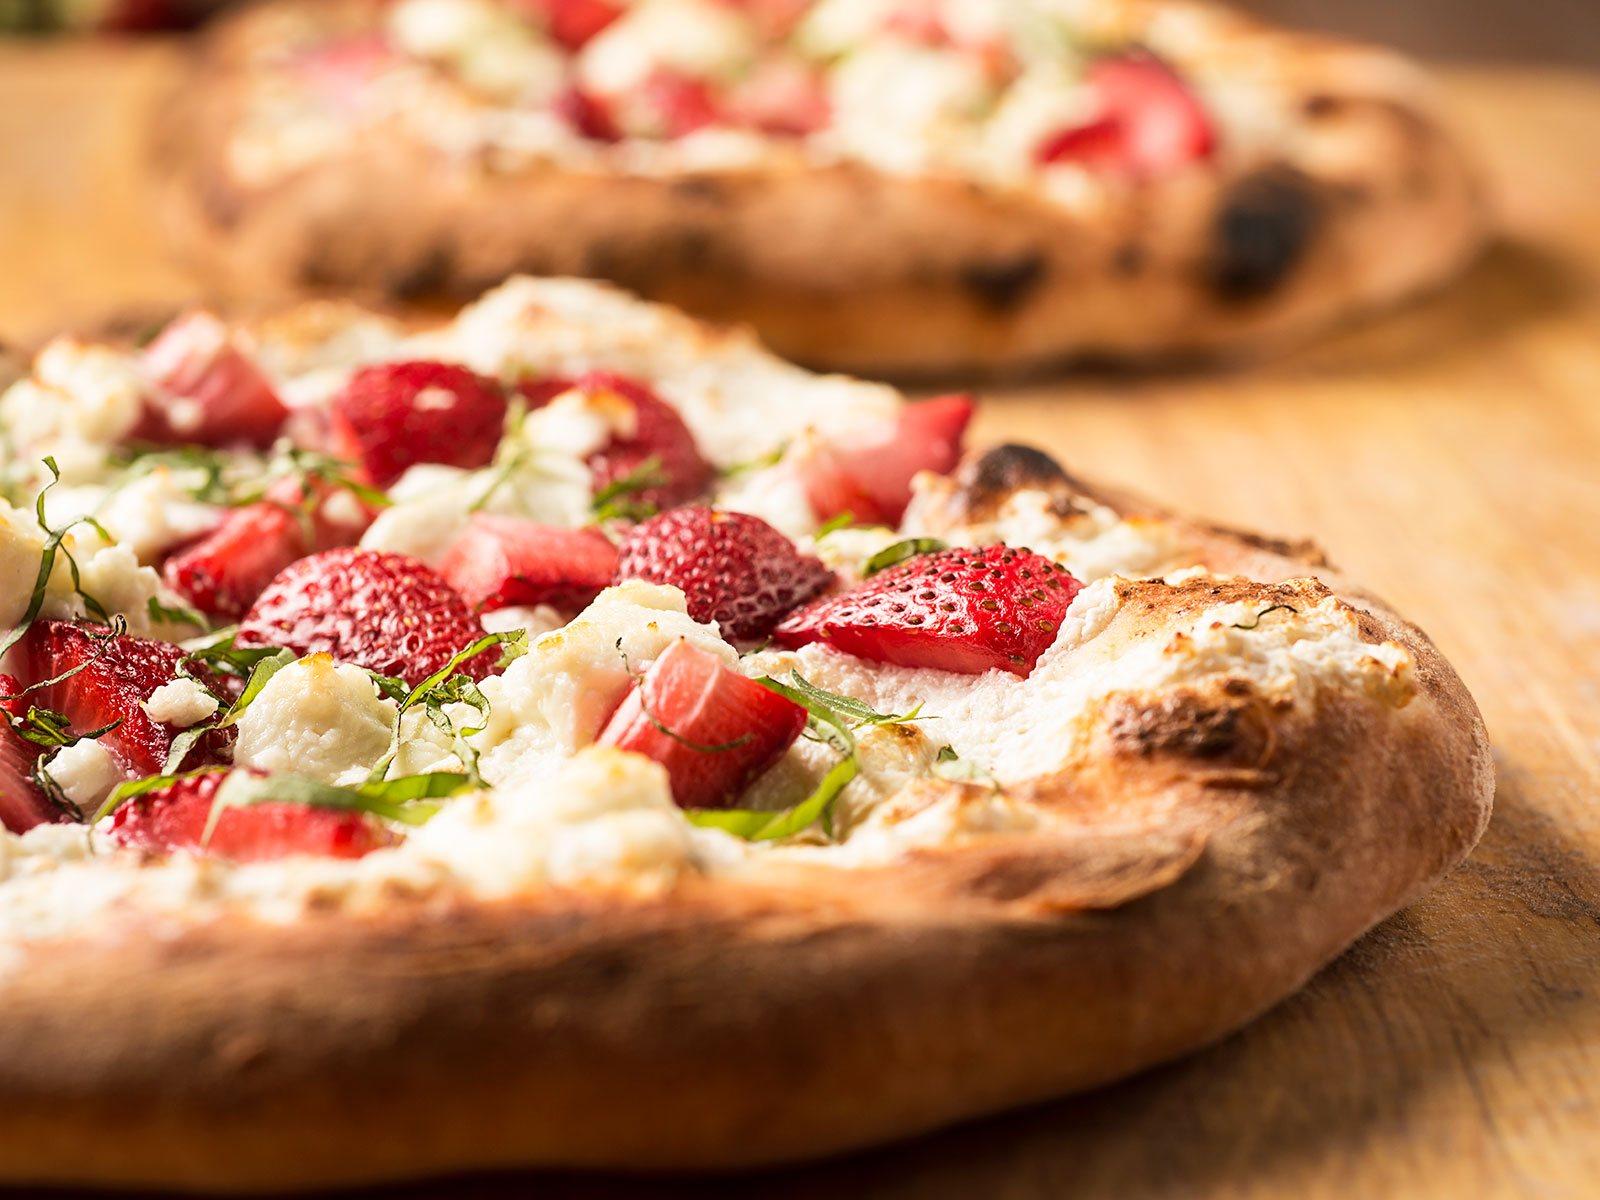 A Twitter User Posted About Strawberries On Pizza and the Internet Lost It